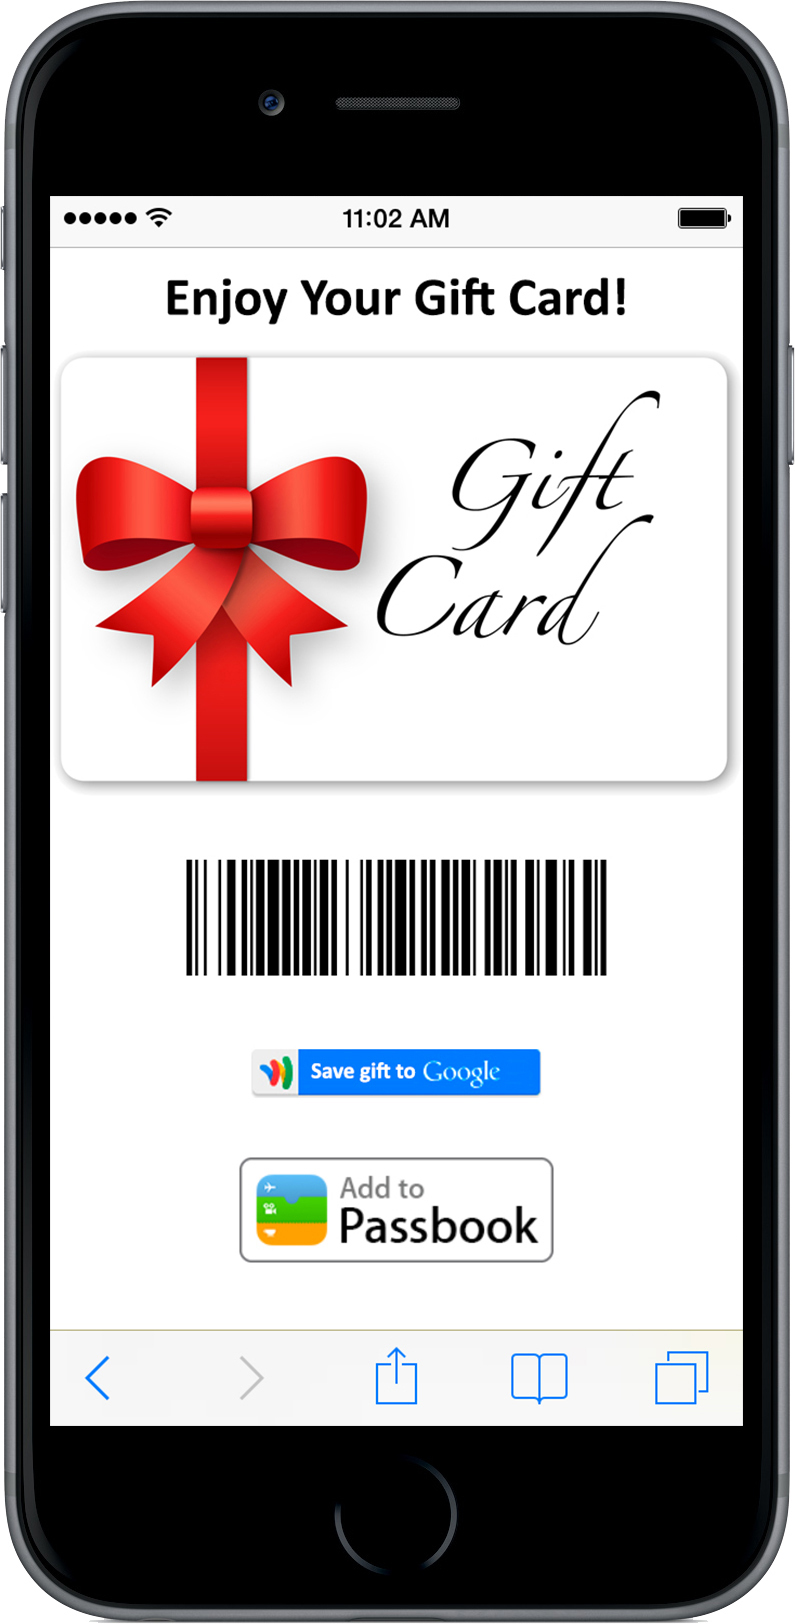 Survey: Most Consumers Prefer Gift Cards to Physical Gifts